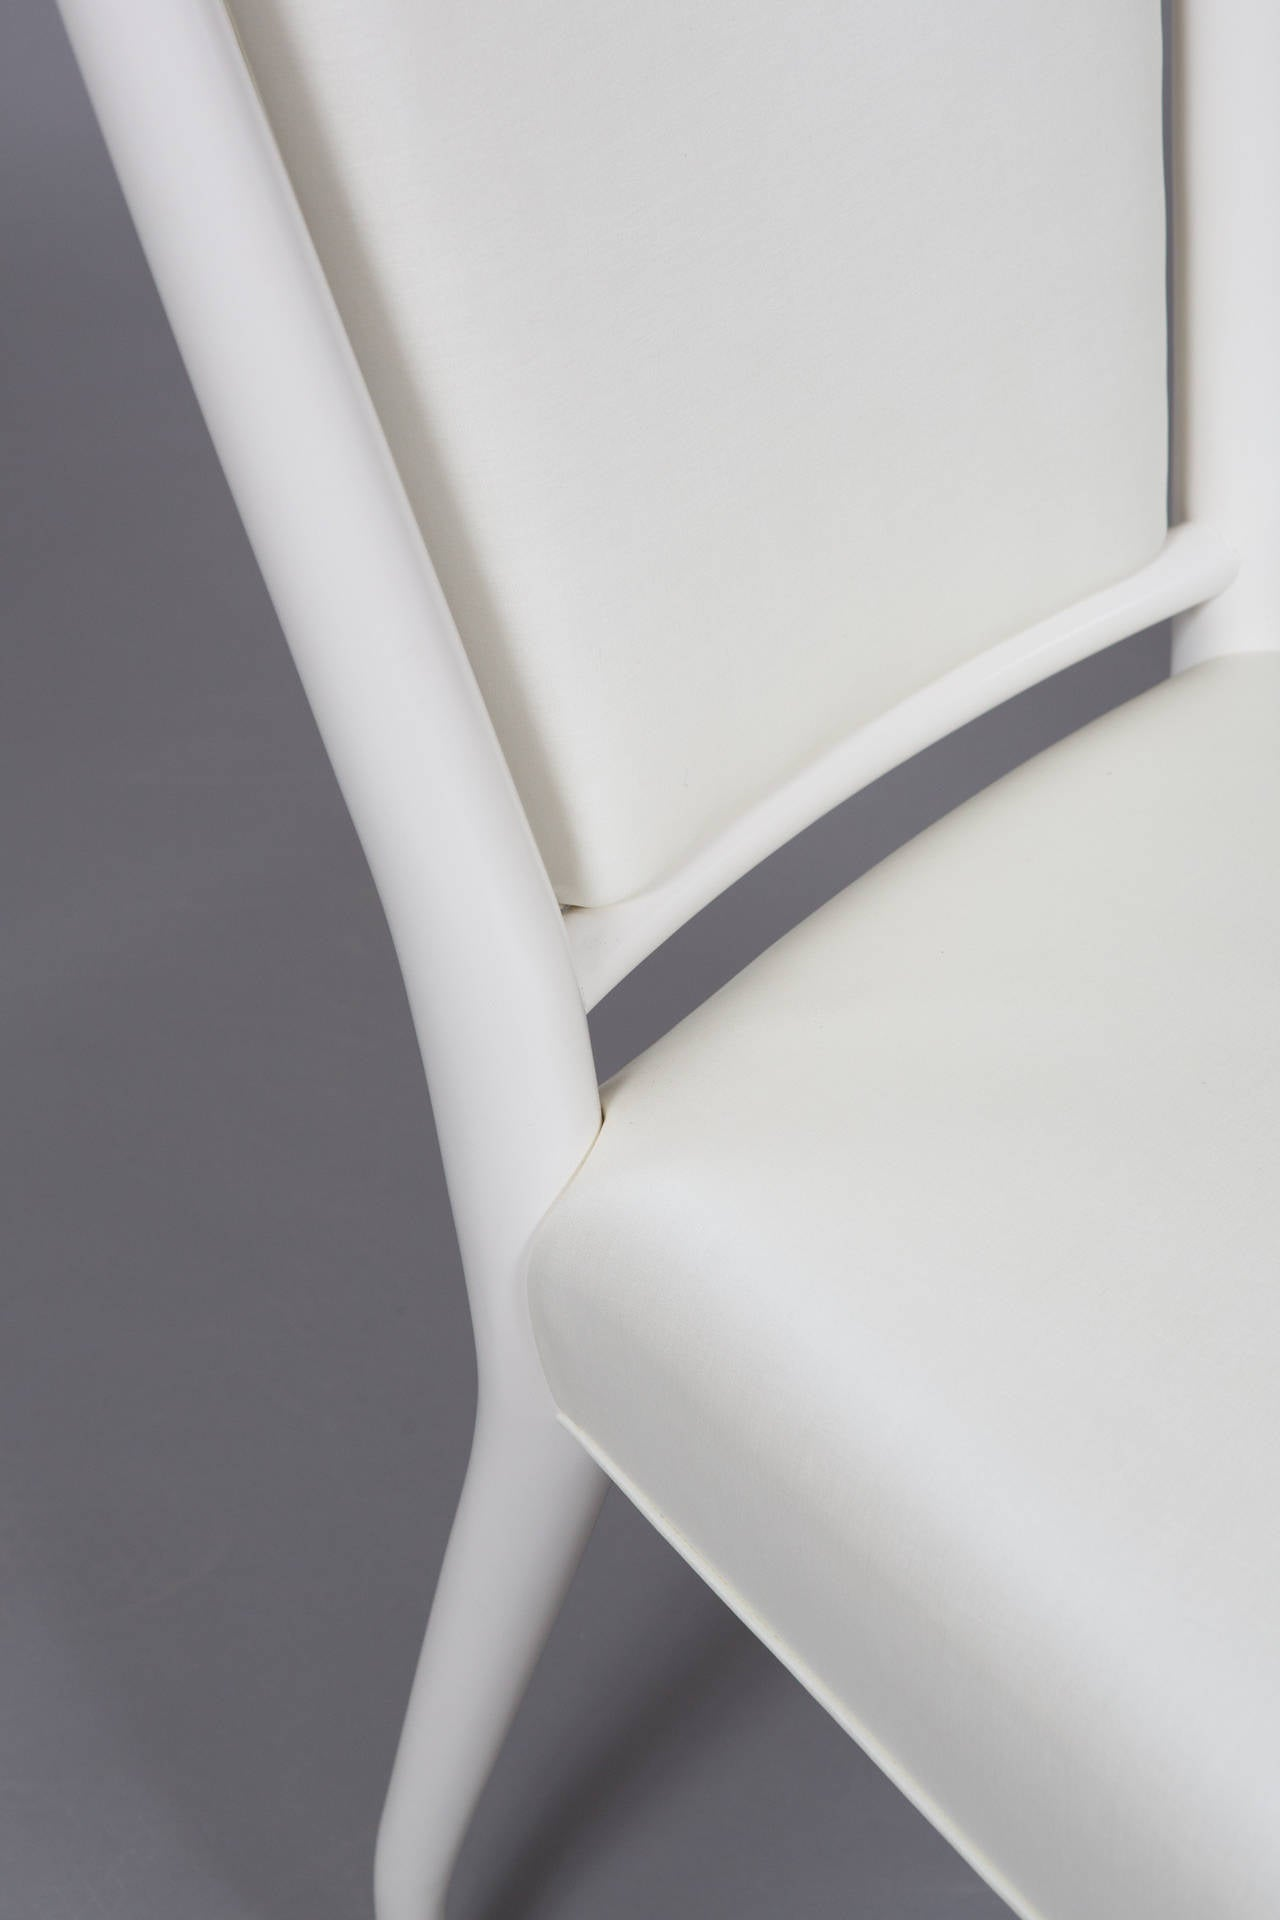 Mid-20th Century Set of J. Stuart Clingman Dining Chairs for Widdicomb For Sale